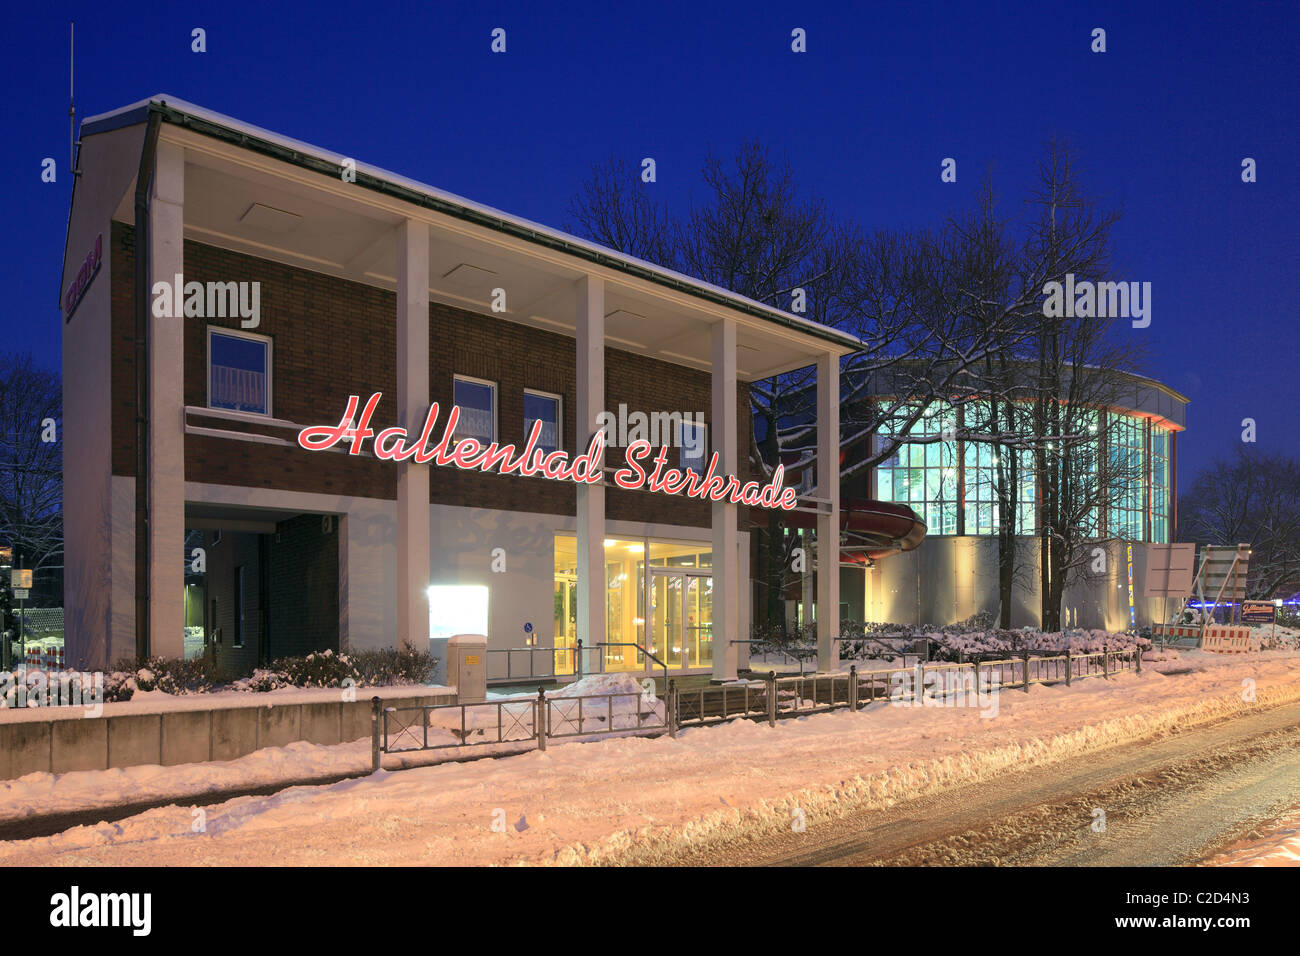 Zwembad Oberhausen Hallenbad Stock Photos And Hallenbad Stock Images Alamy